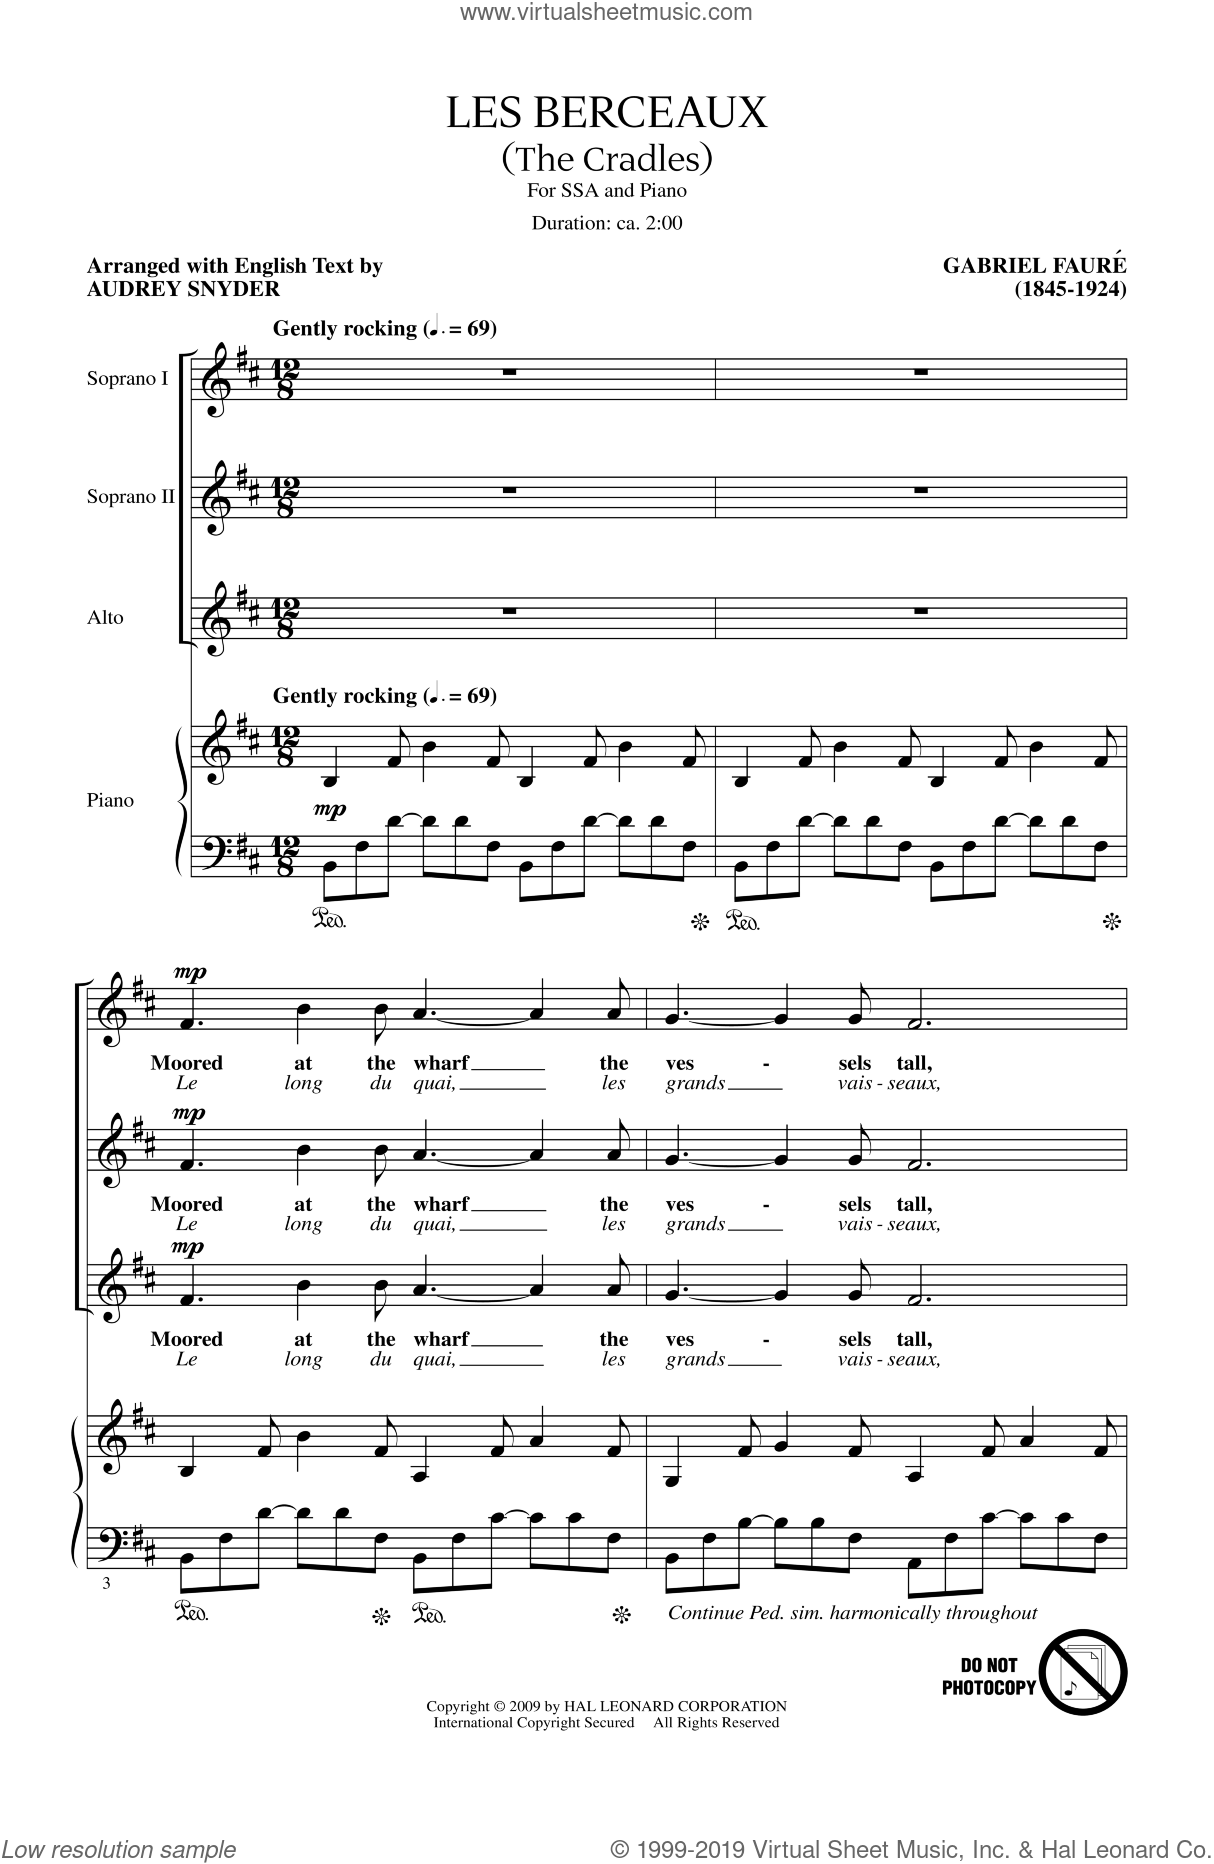 Les Berceaux (The Cradles) sheet music for choir and piano (SSA) by Gabriel Faure